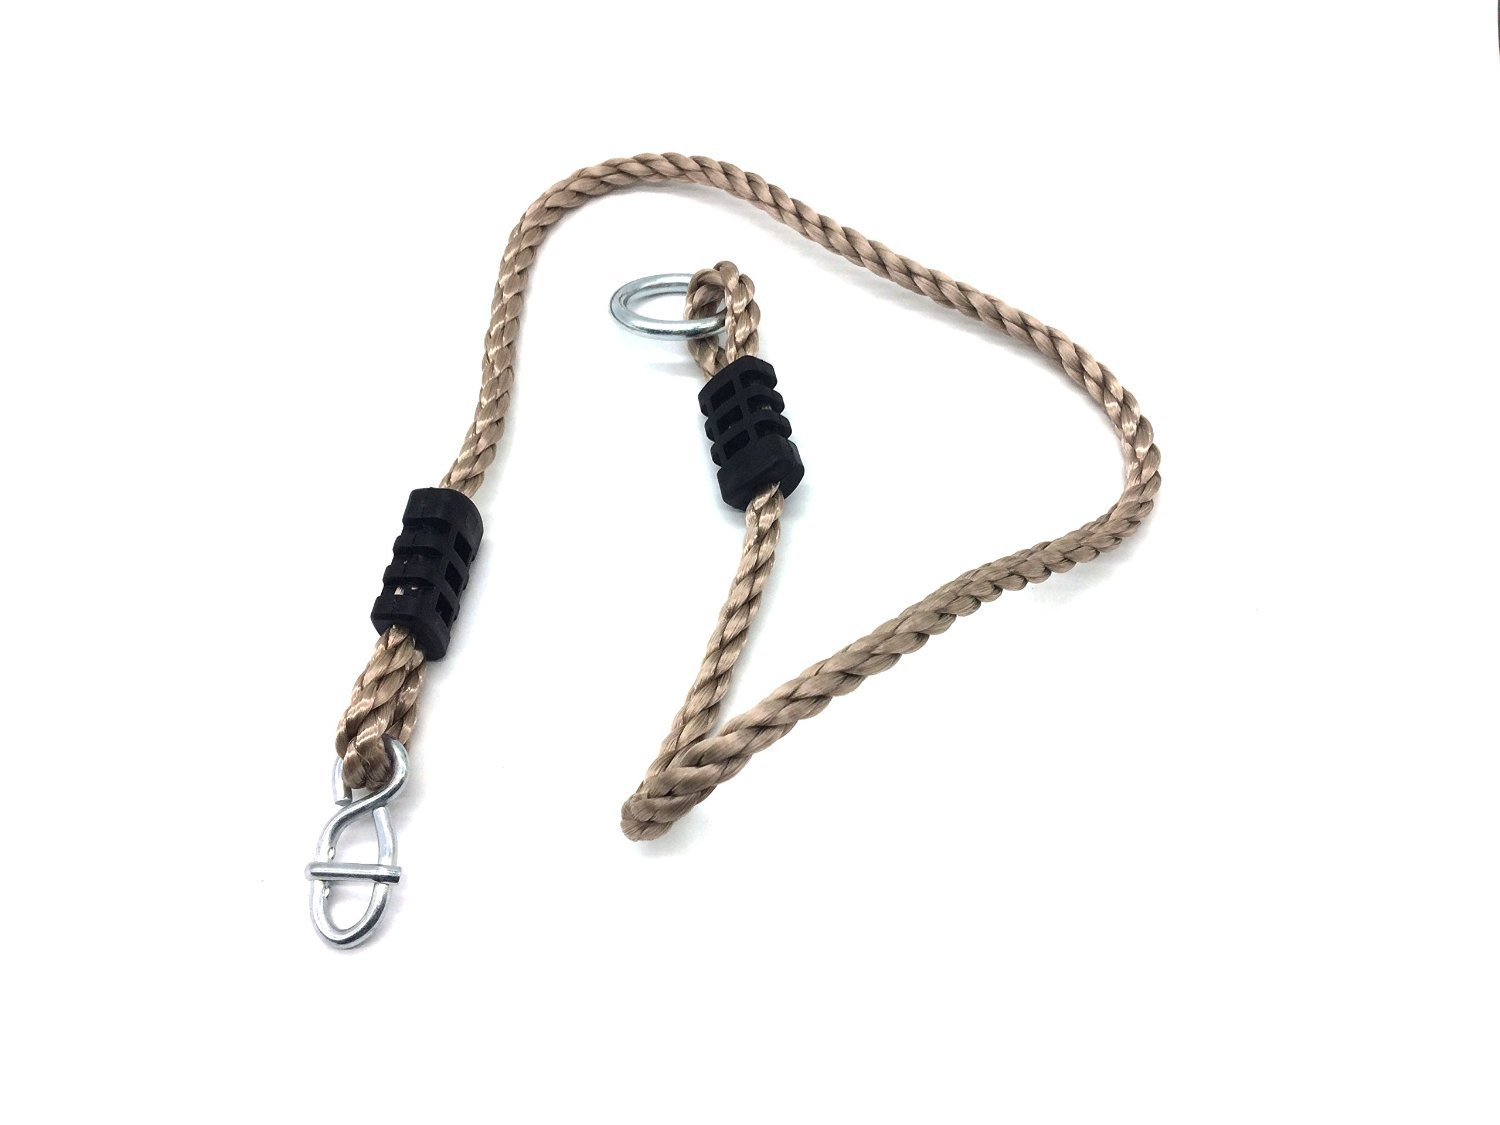 A AIFAMY Tree Swing/Hammock Hangings Safer Nylon Rope,Tree Swing Hanging Strap Kit(Holds Up to 650 Lbs.) -Pack of 2(Adjustable)